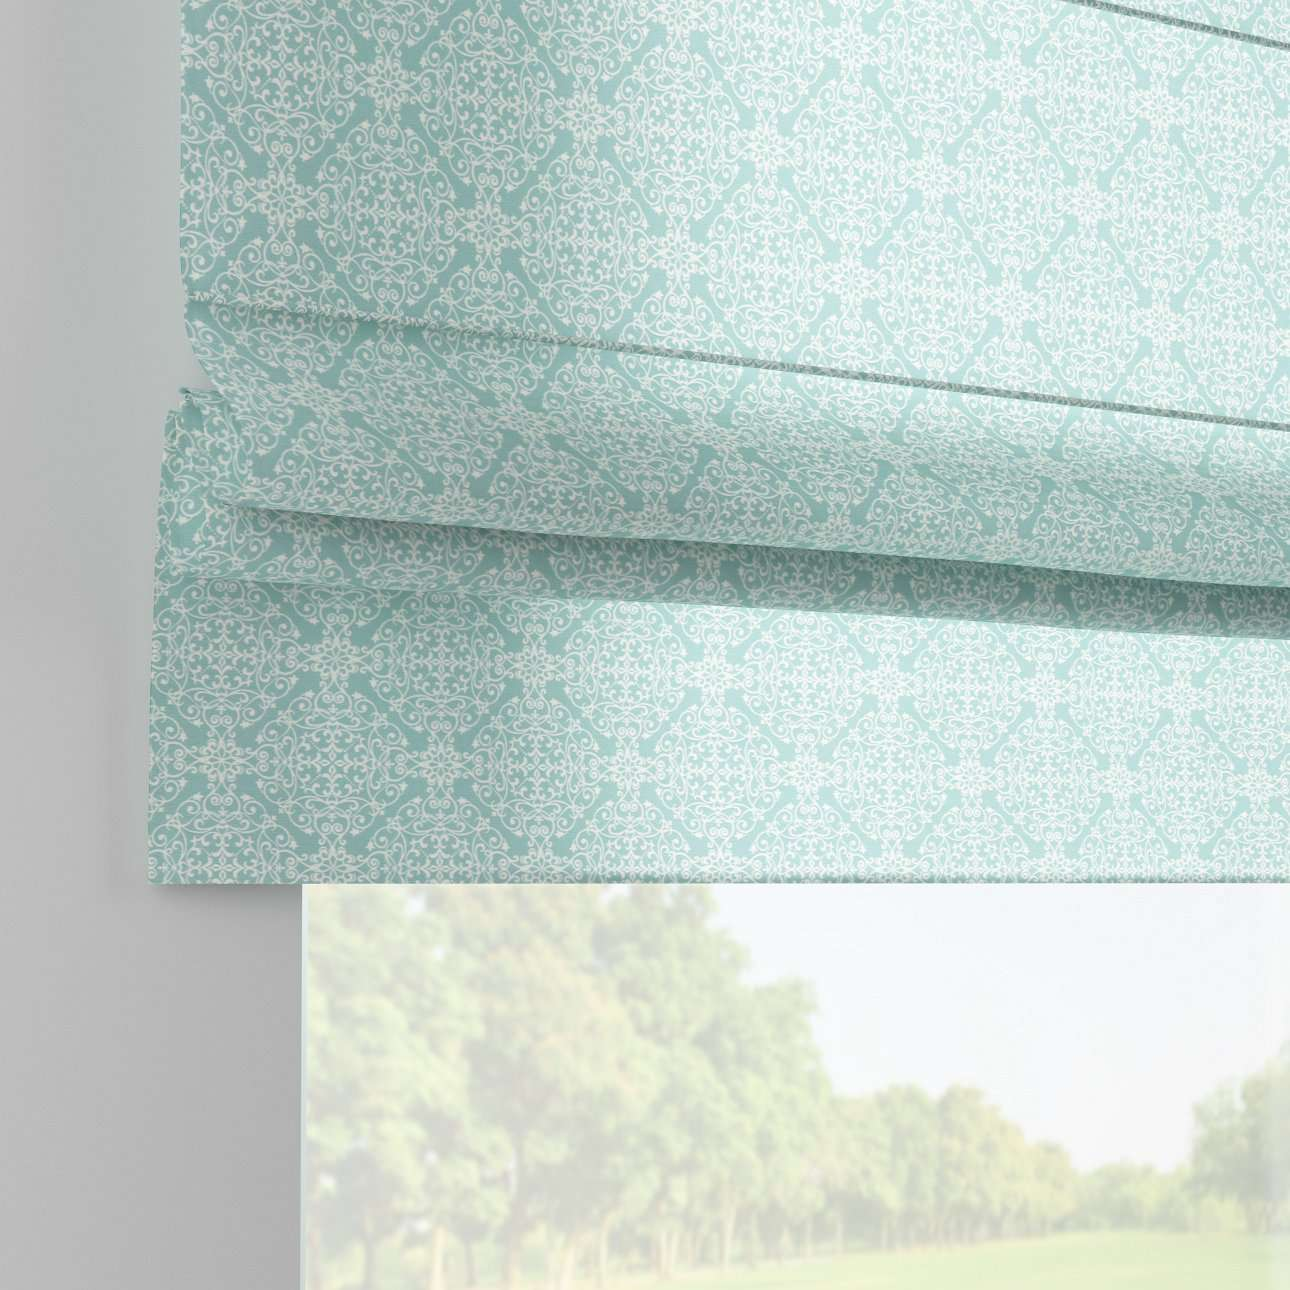 Padva roman blind  80 x 170 cm (31.5 x 67 inch) in collection Flowers, fabric: 140-37